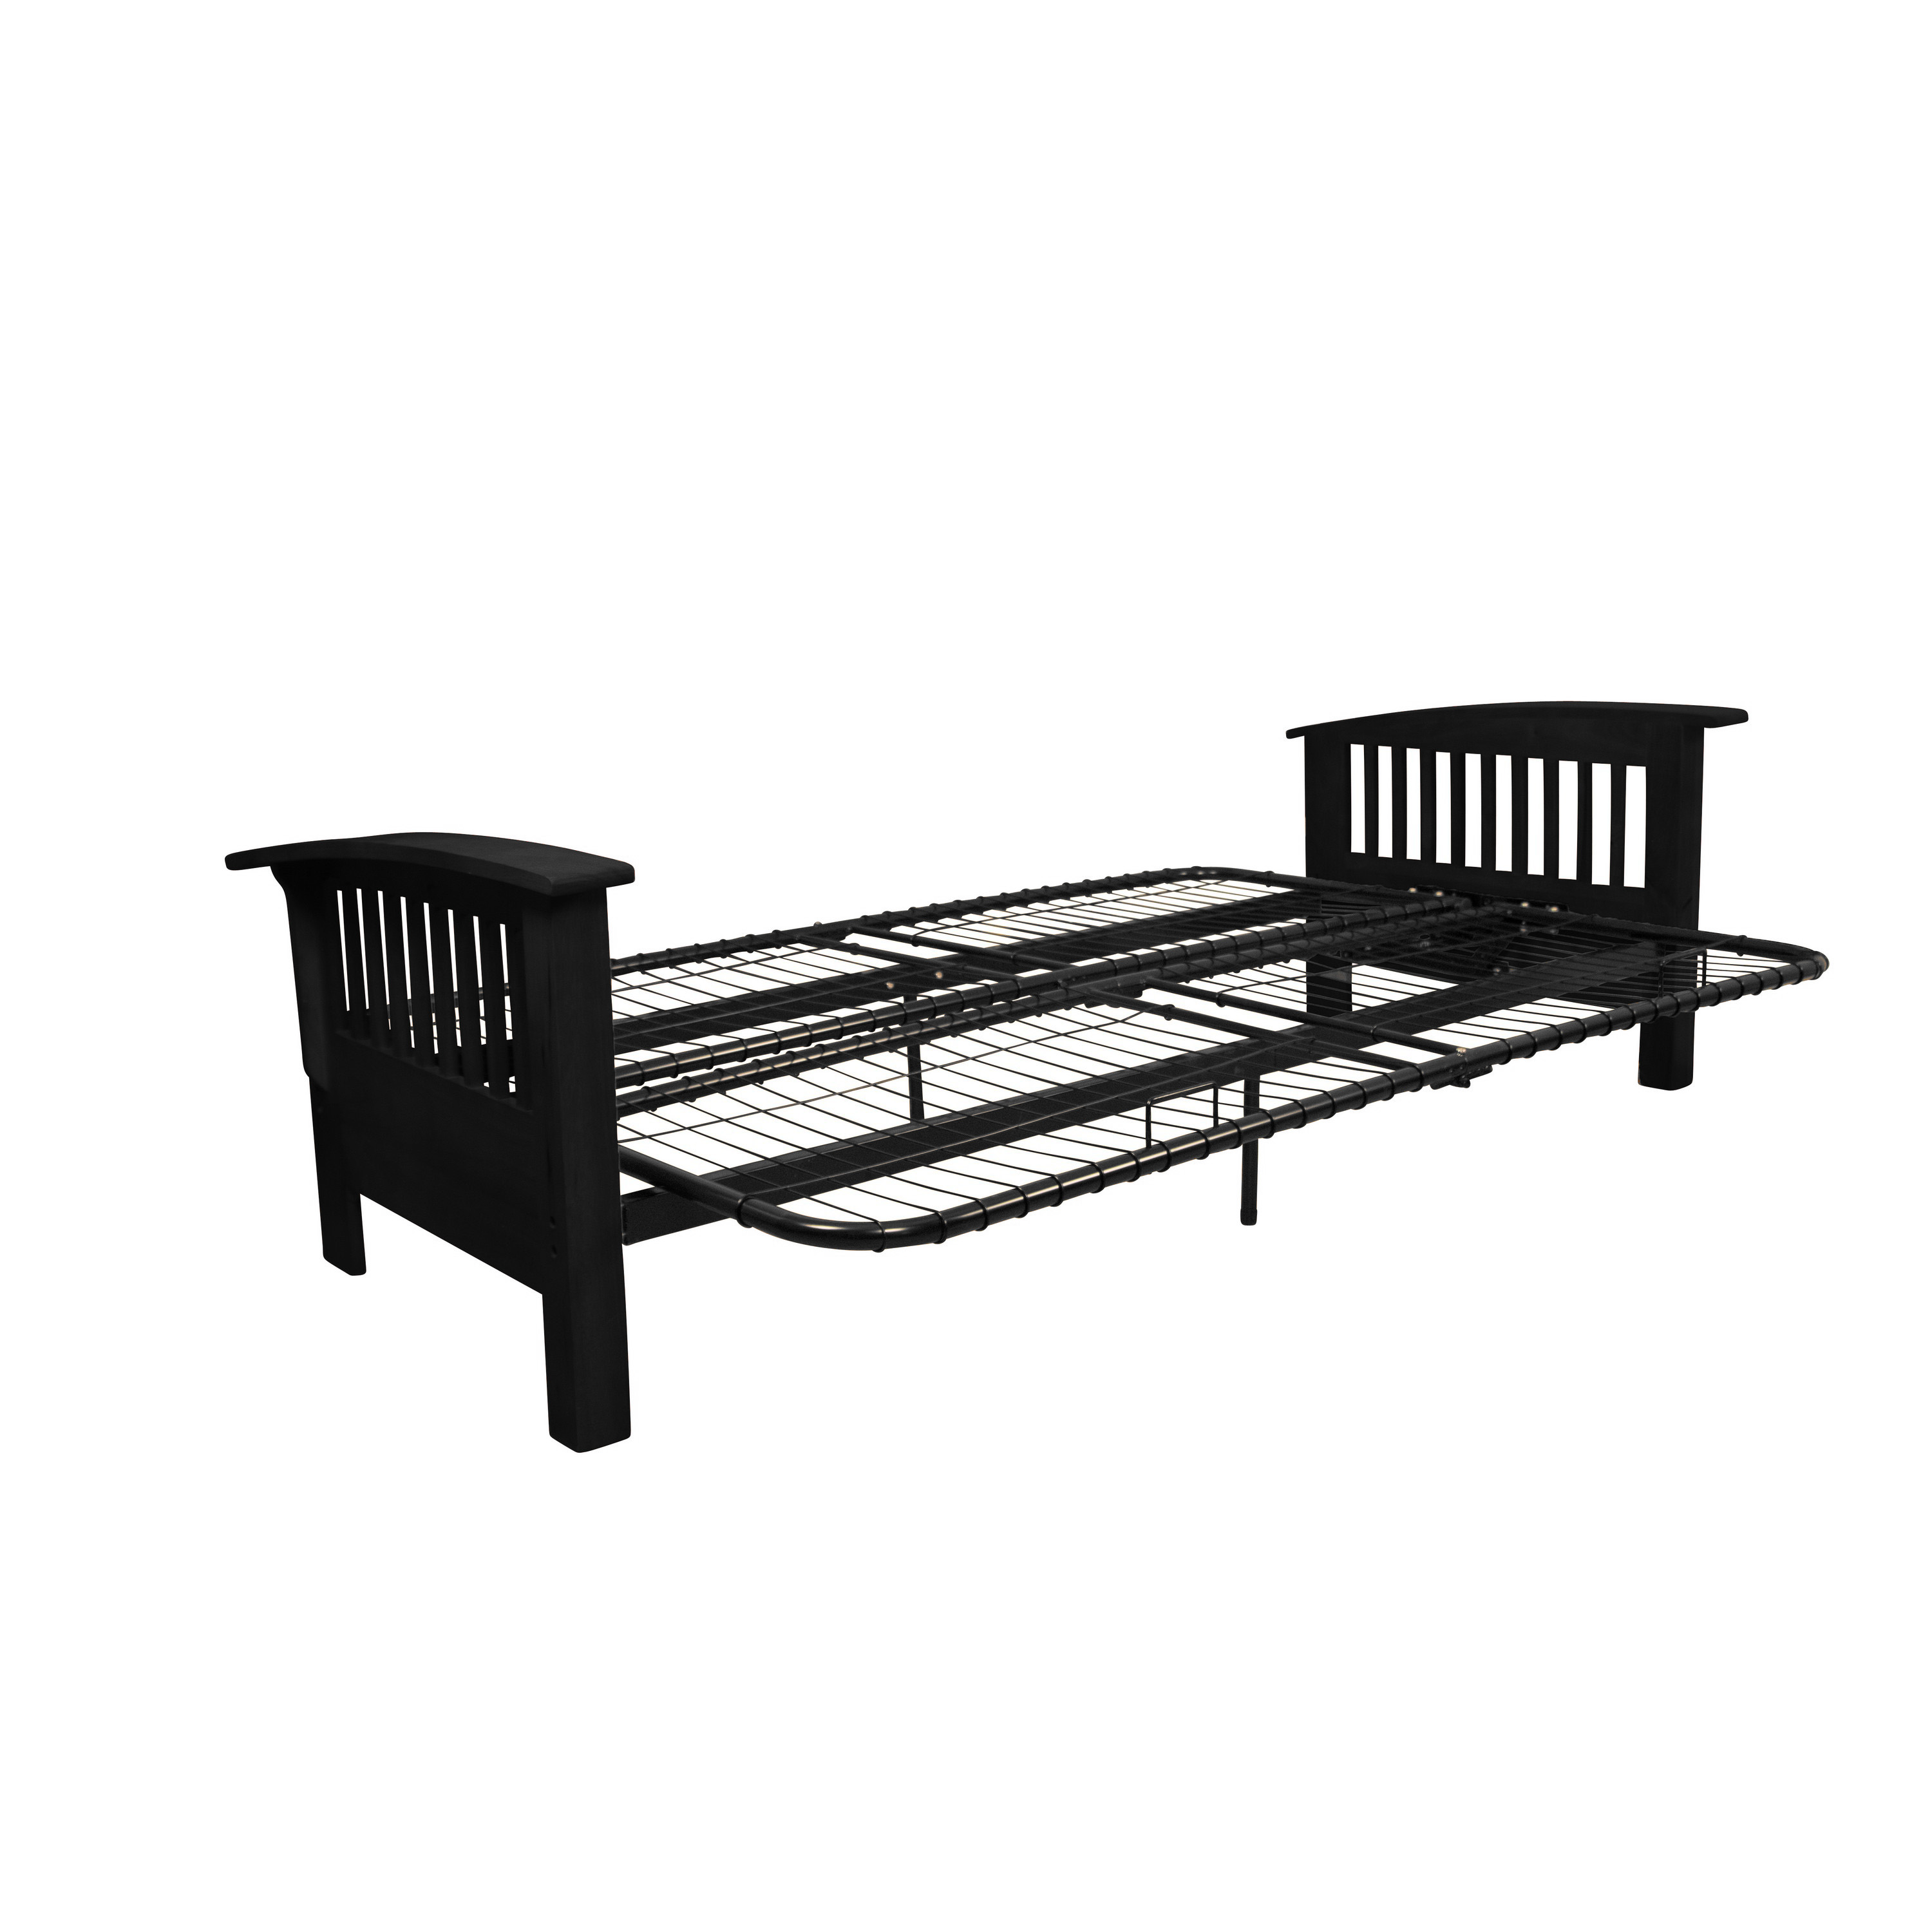 Morris Mission Style Futon Sofa Sleeper Bed Frame Queen Size Black Arms